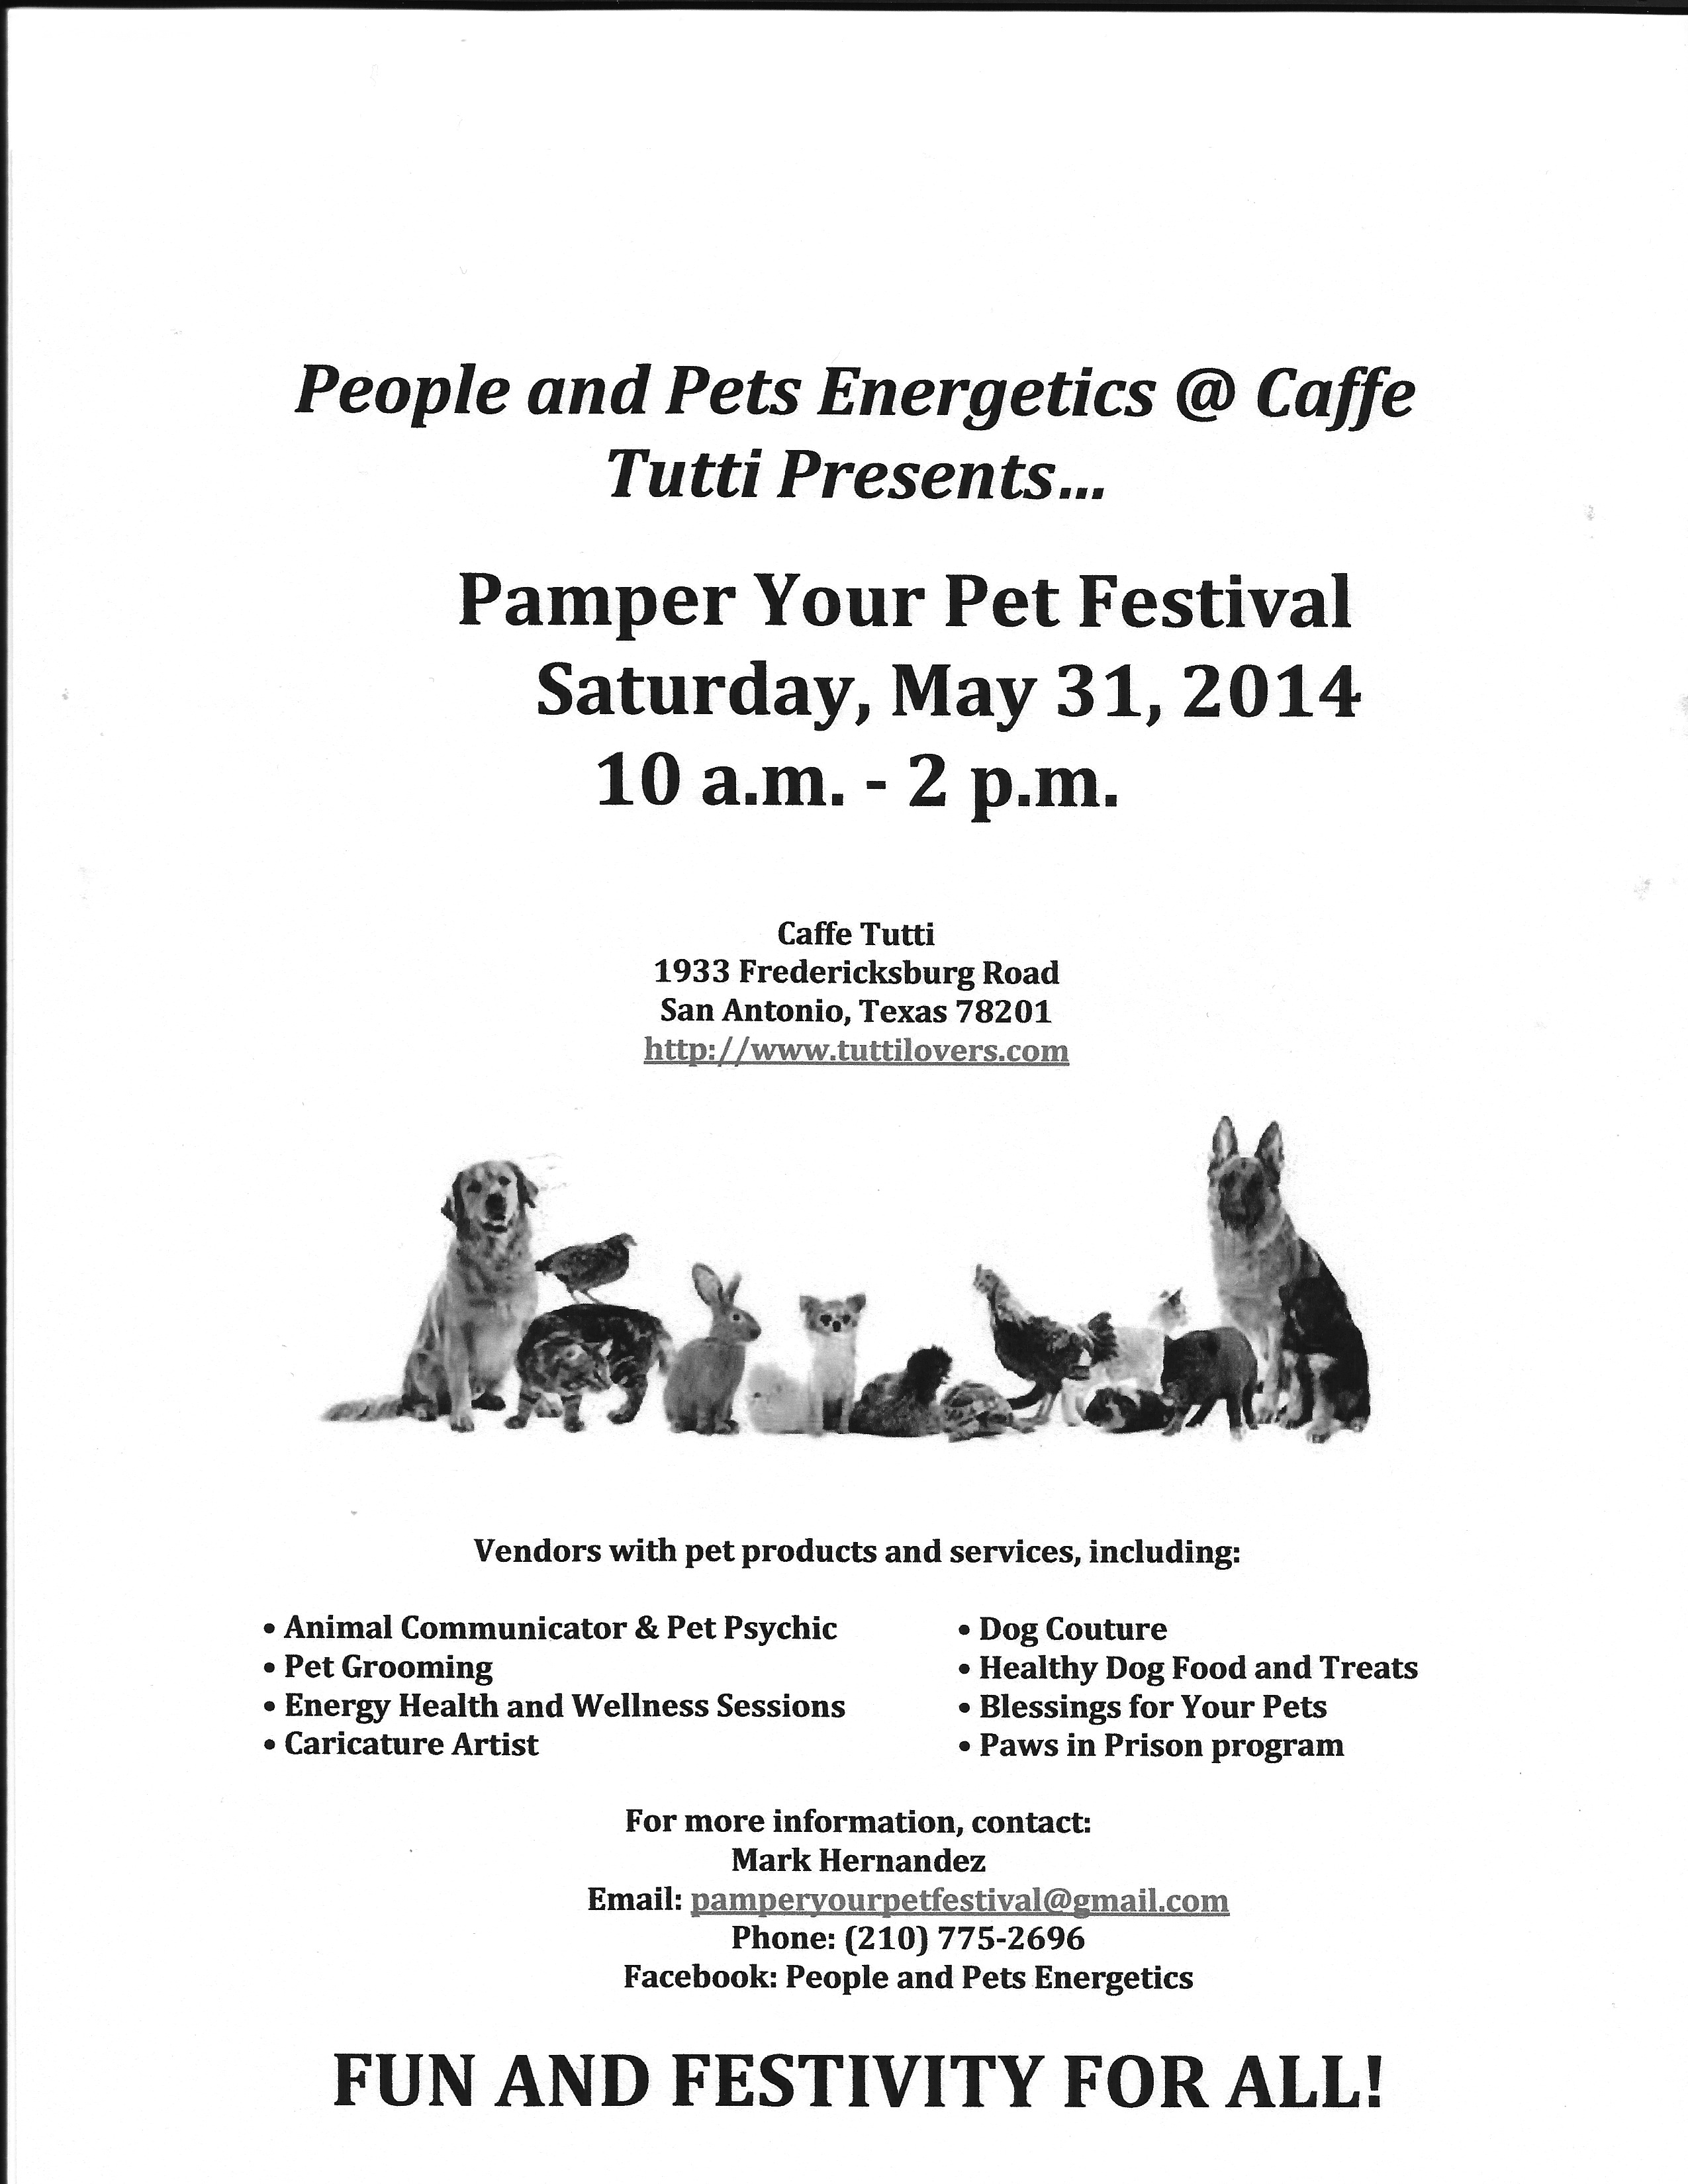 Pamper Your Pet Festival Flyer